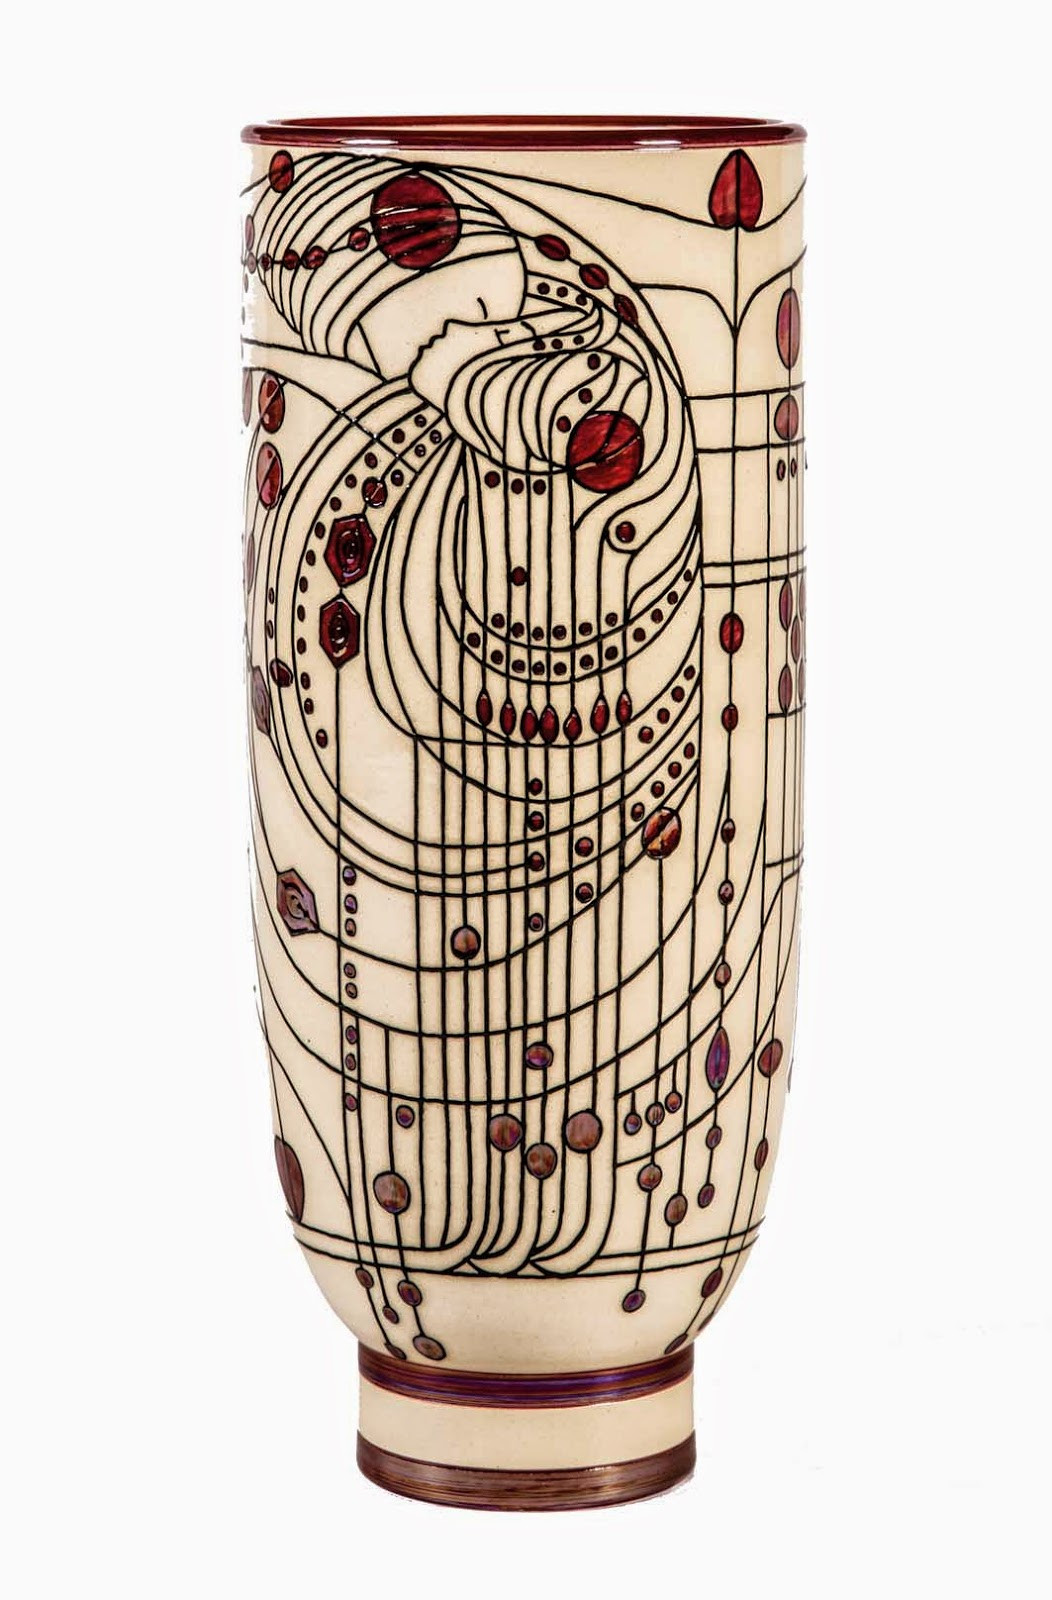 isle of wight glass vase of new dennis chinaworks designs interior design and decorating intended for new dennis chinaworks designs interior design and decorating margaret macdonald mackintosh red lustred m deco